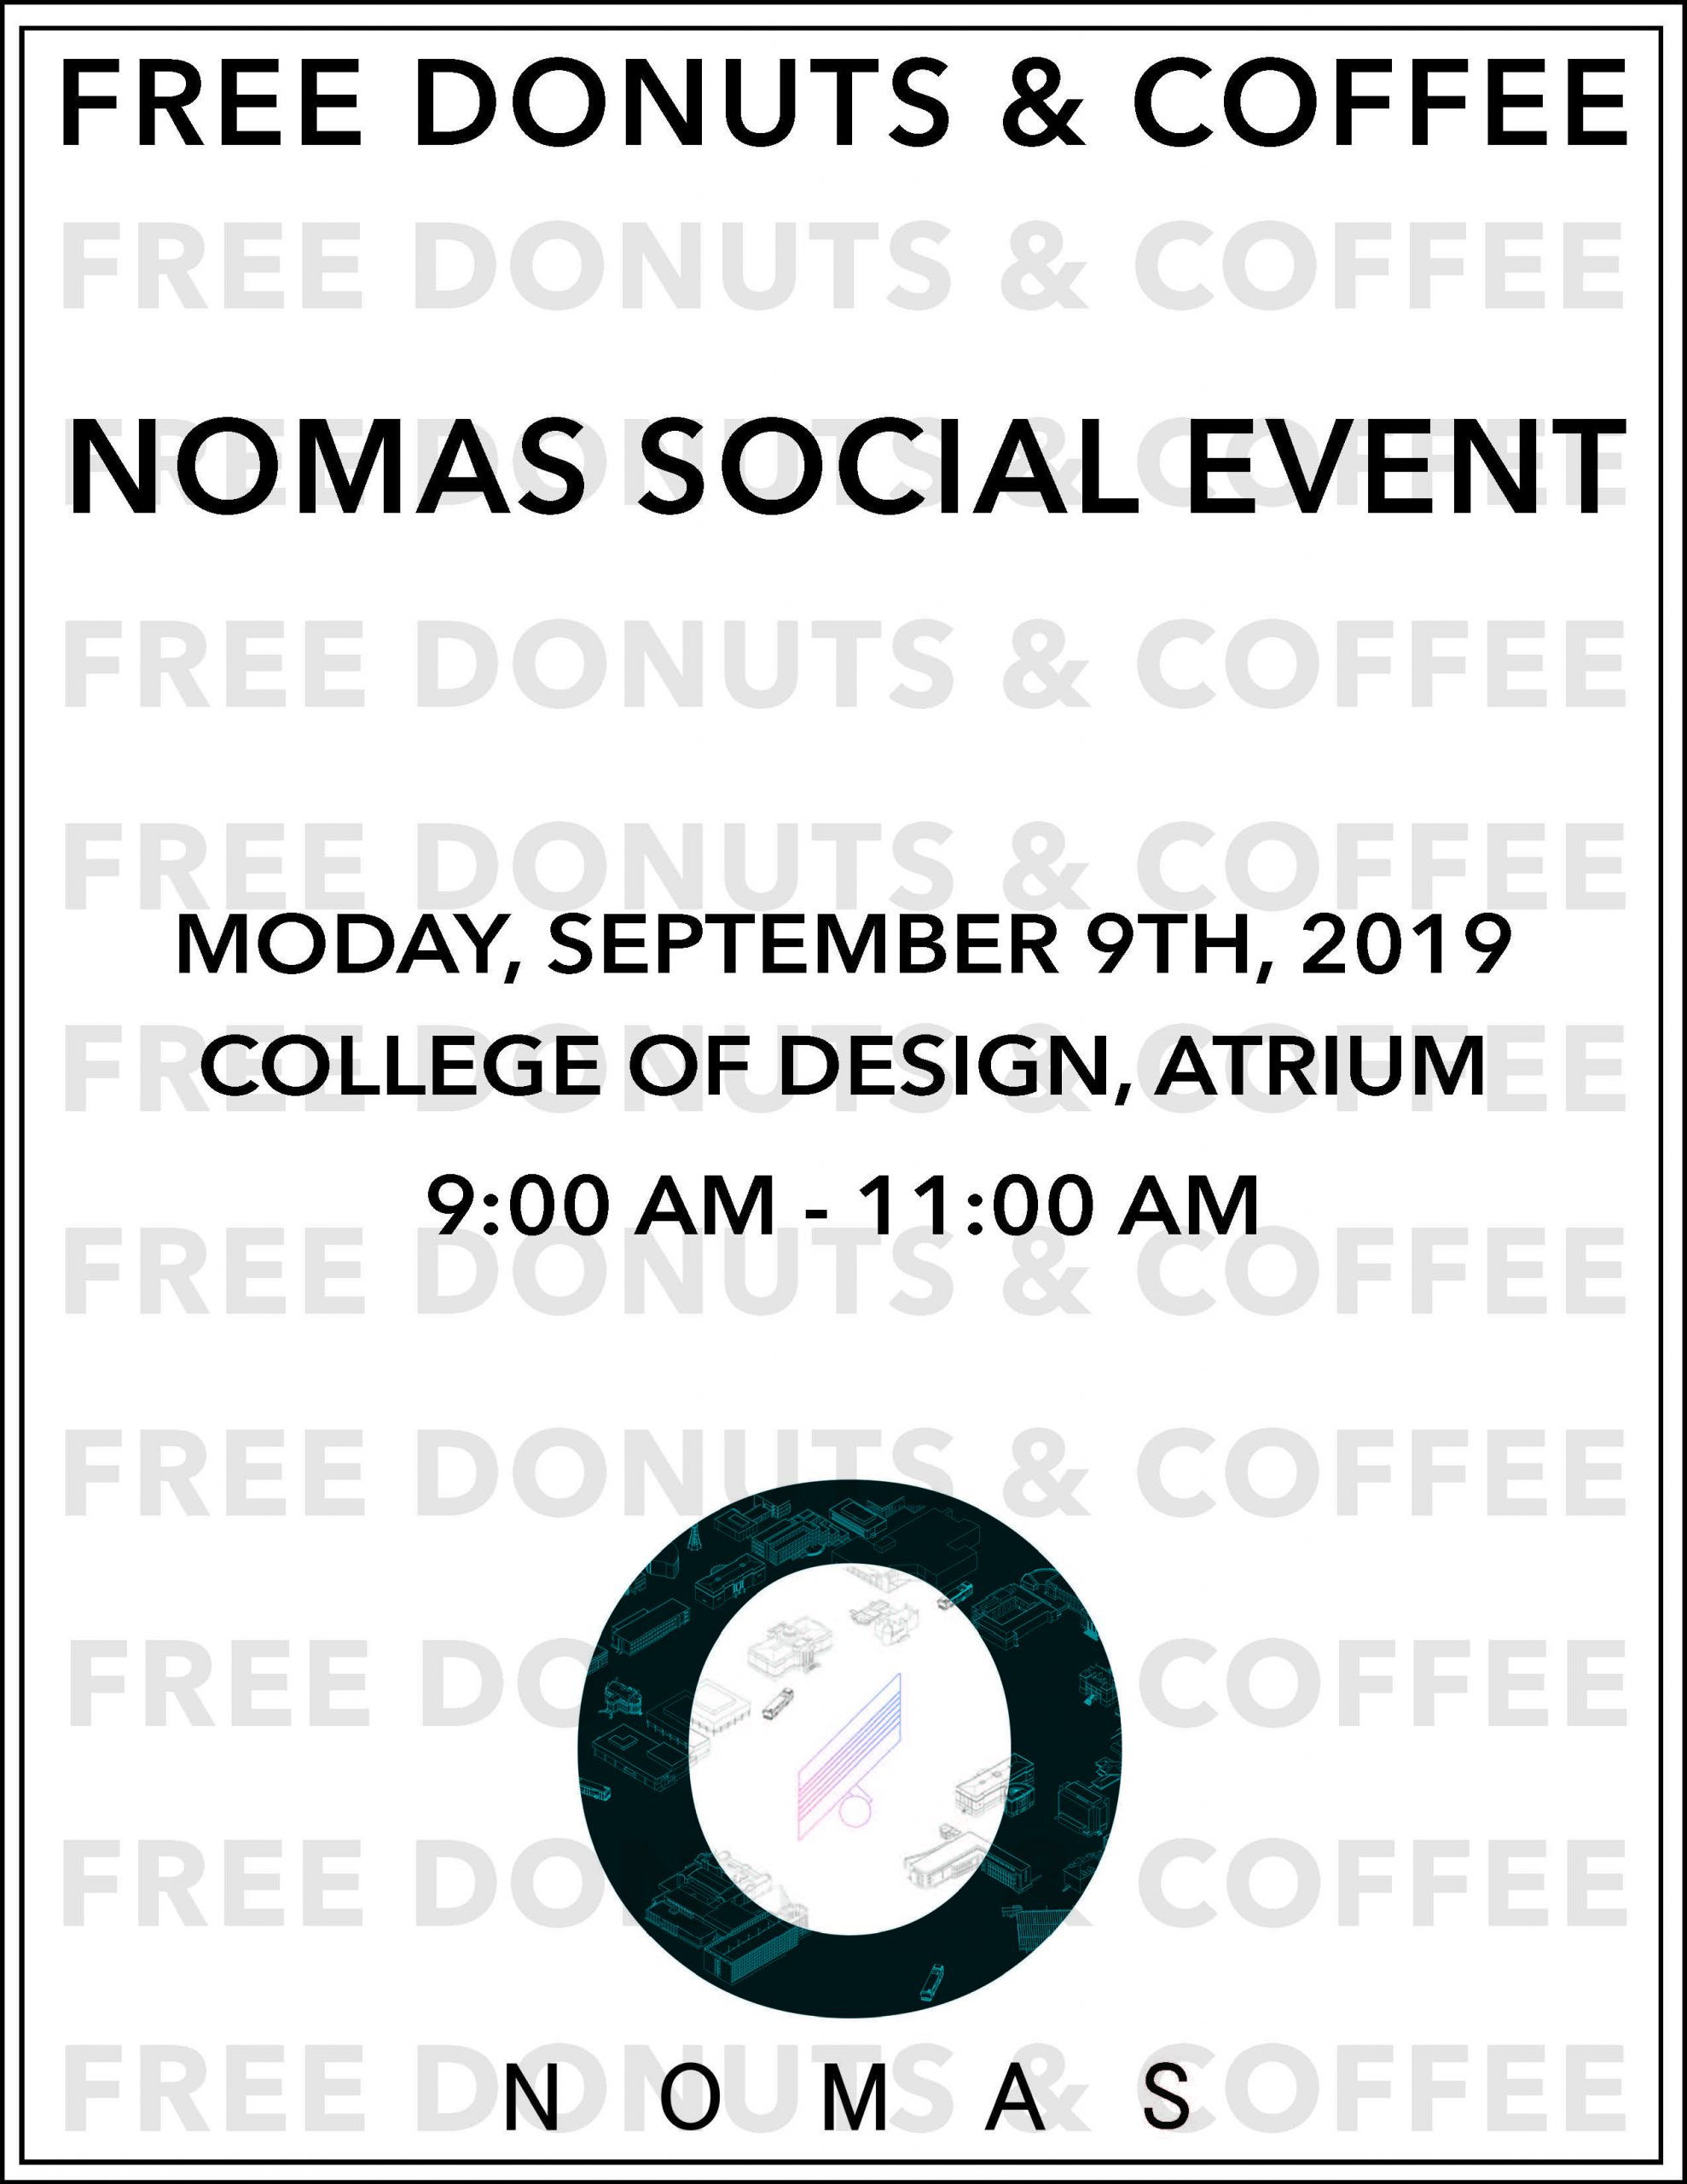 NOMAS donuts and coffee (002)